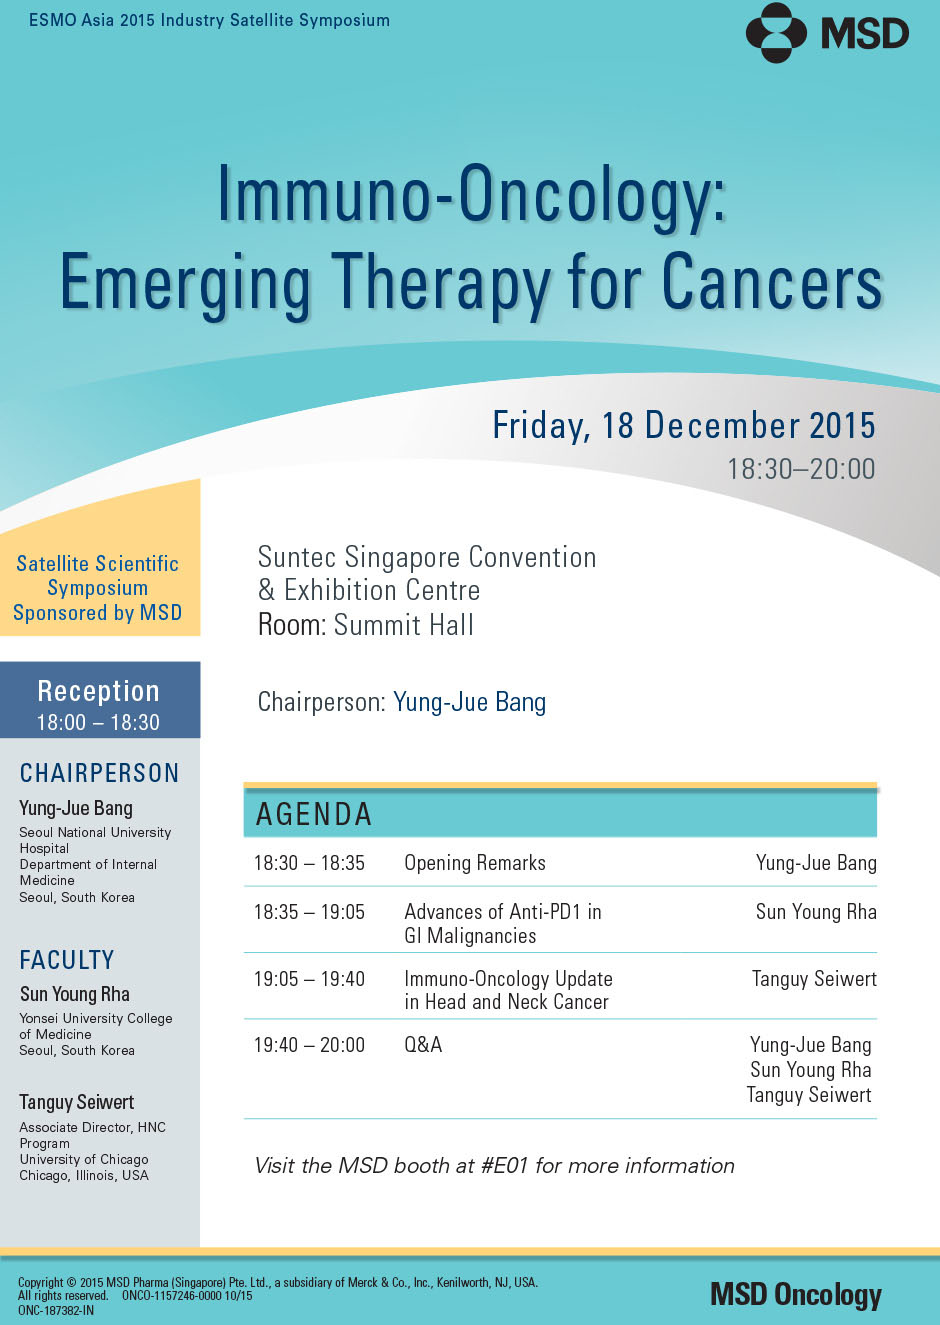 Immuno-Oncology: Emerging Therapy for Cancers